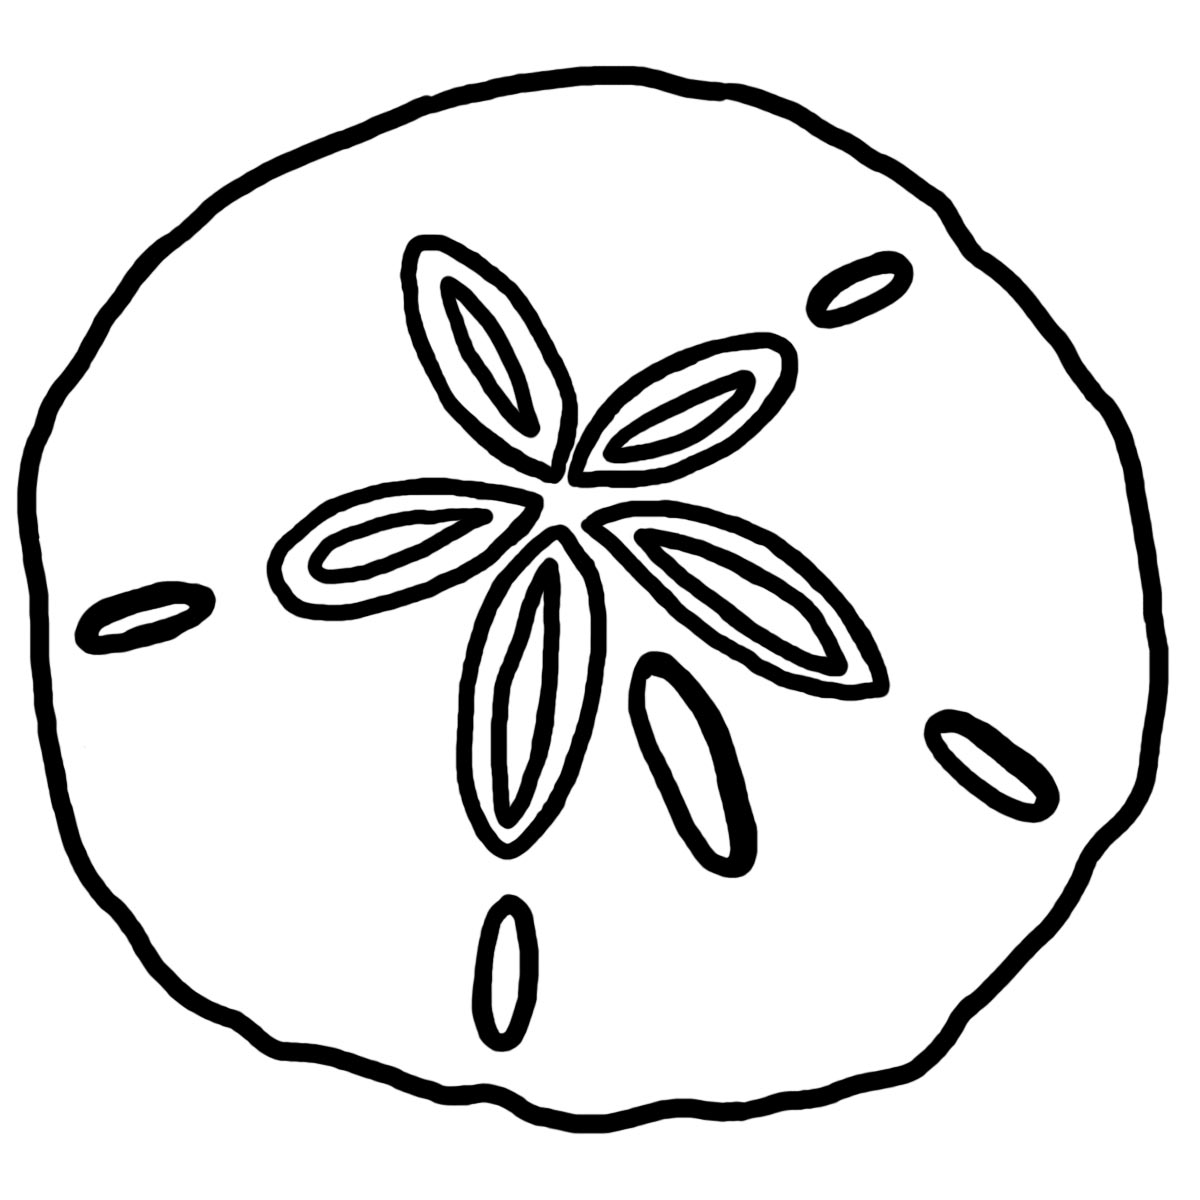 sand dollar coloring image clipart id 86027 : Uncategorized ...